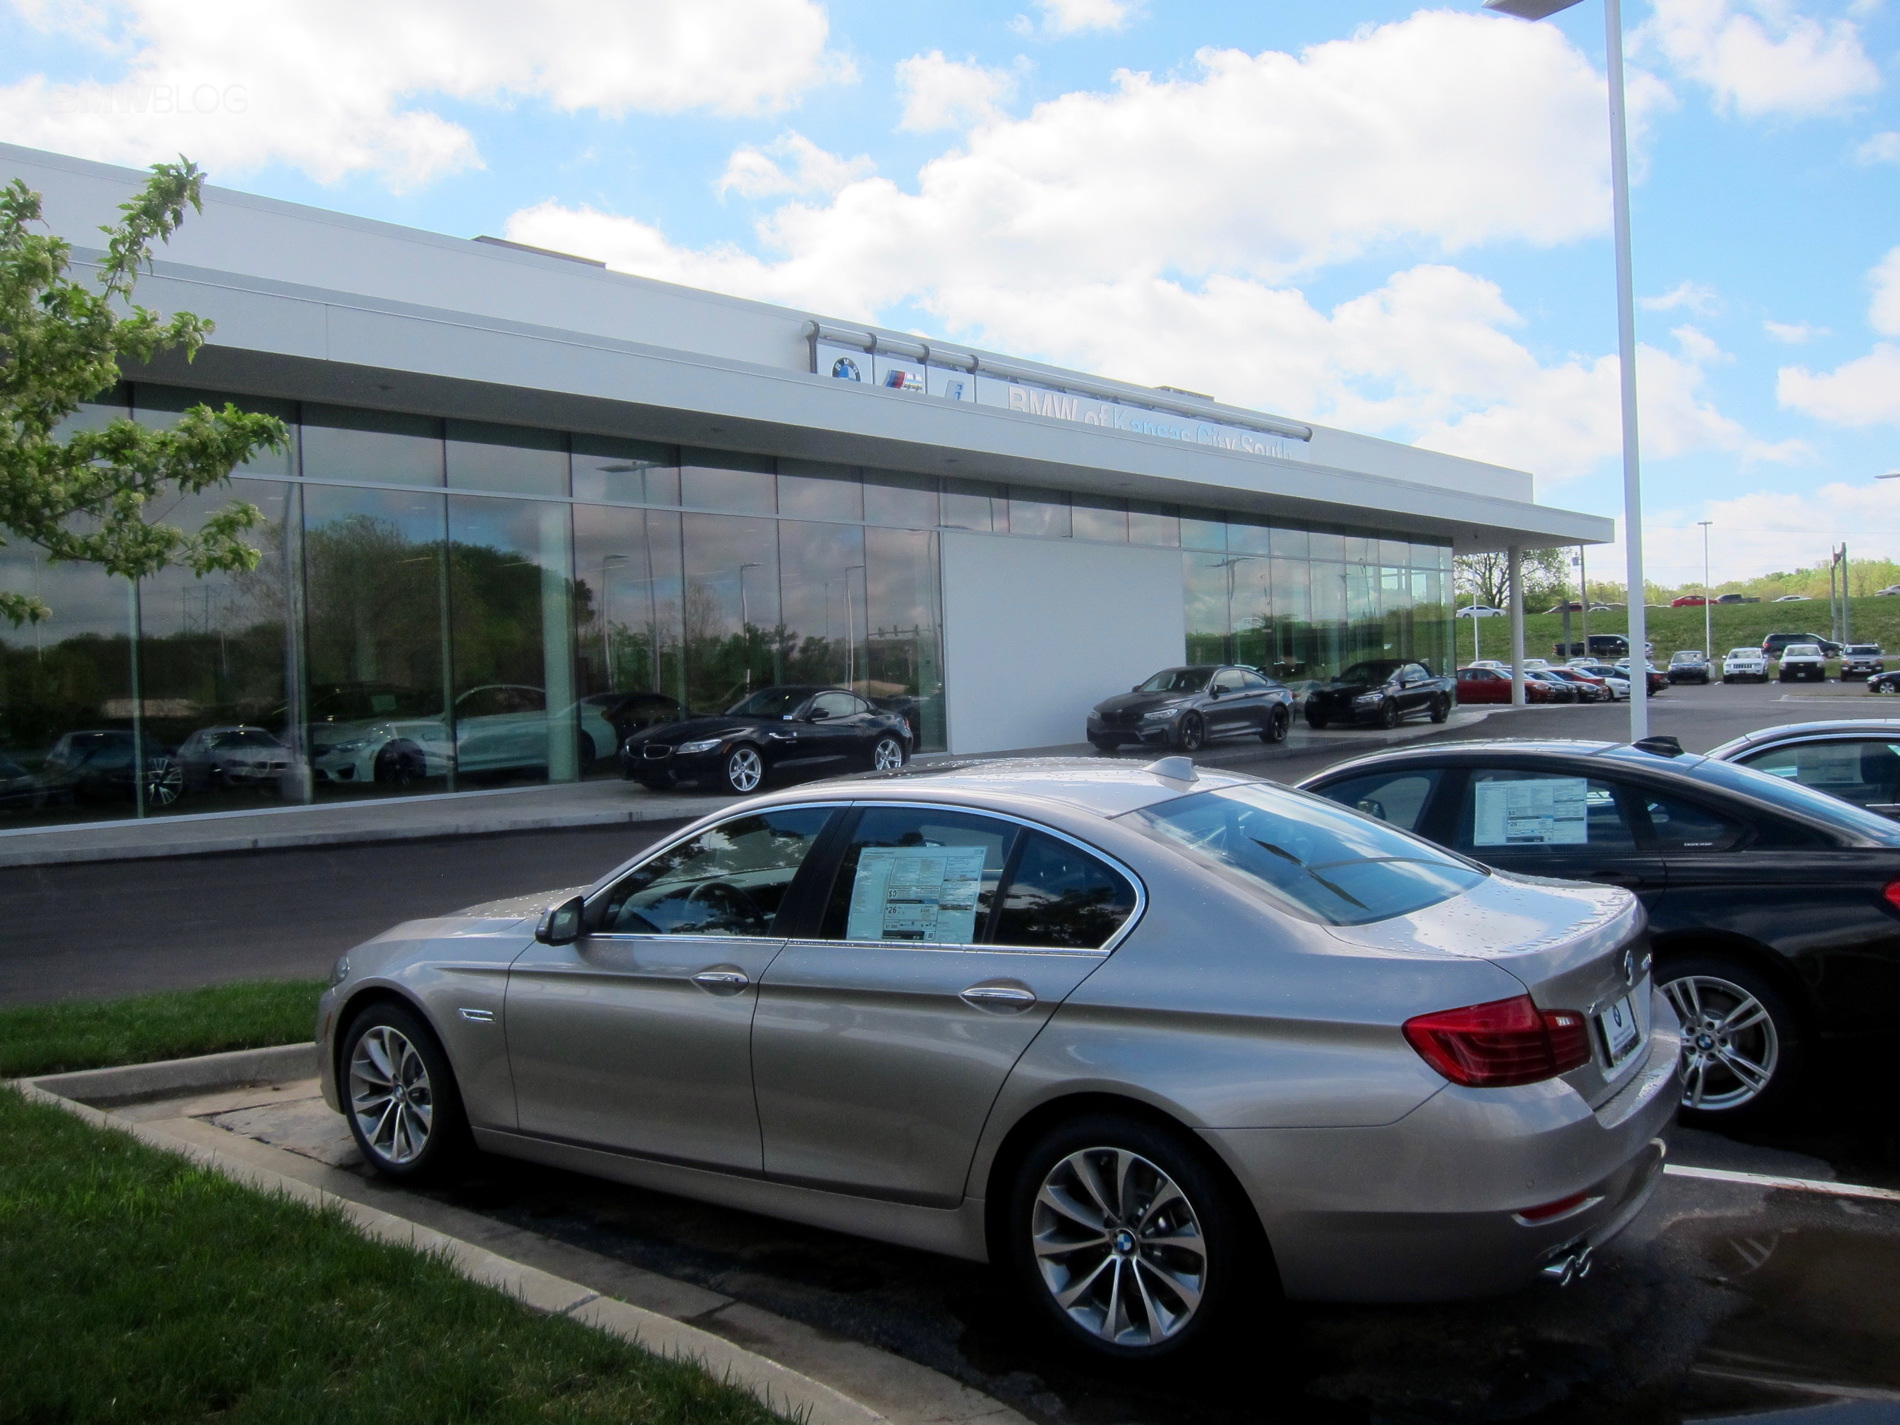 Stevens Creek Bmw Service >> More BMW Future Retail Design dealerships are opening ...